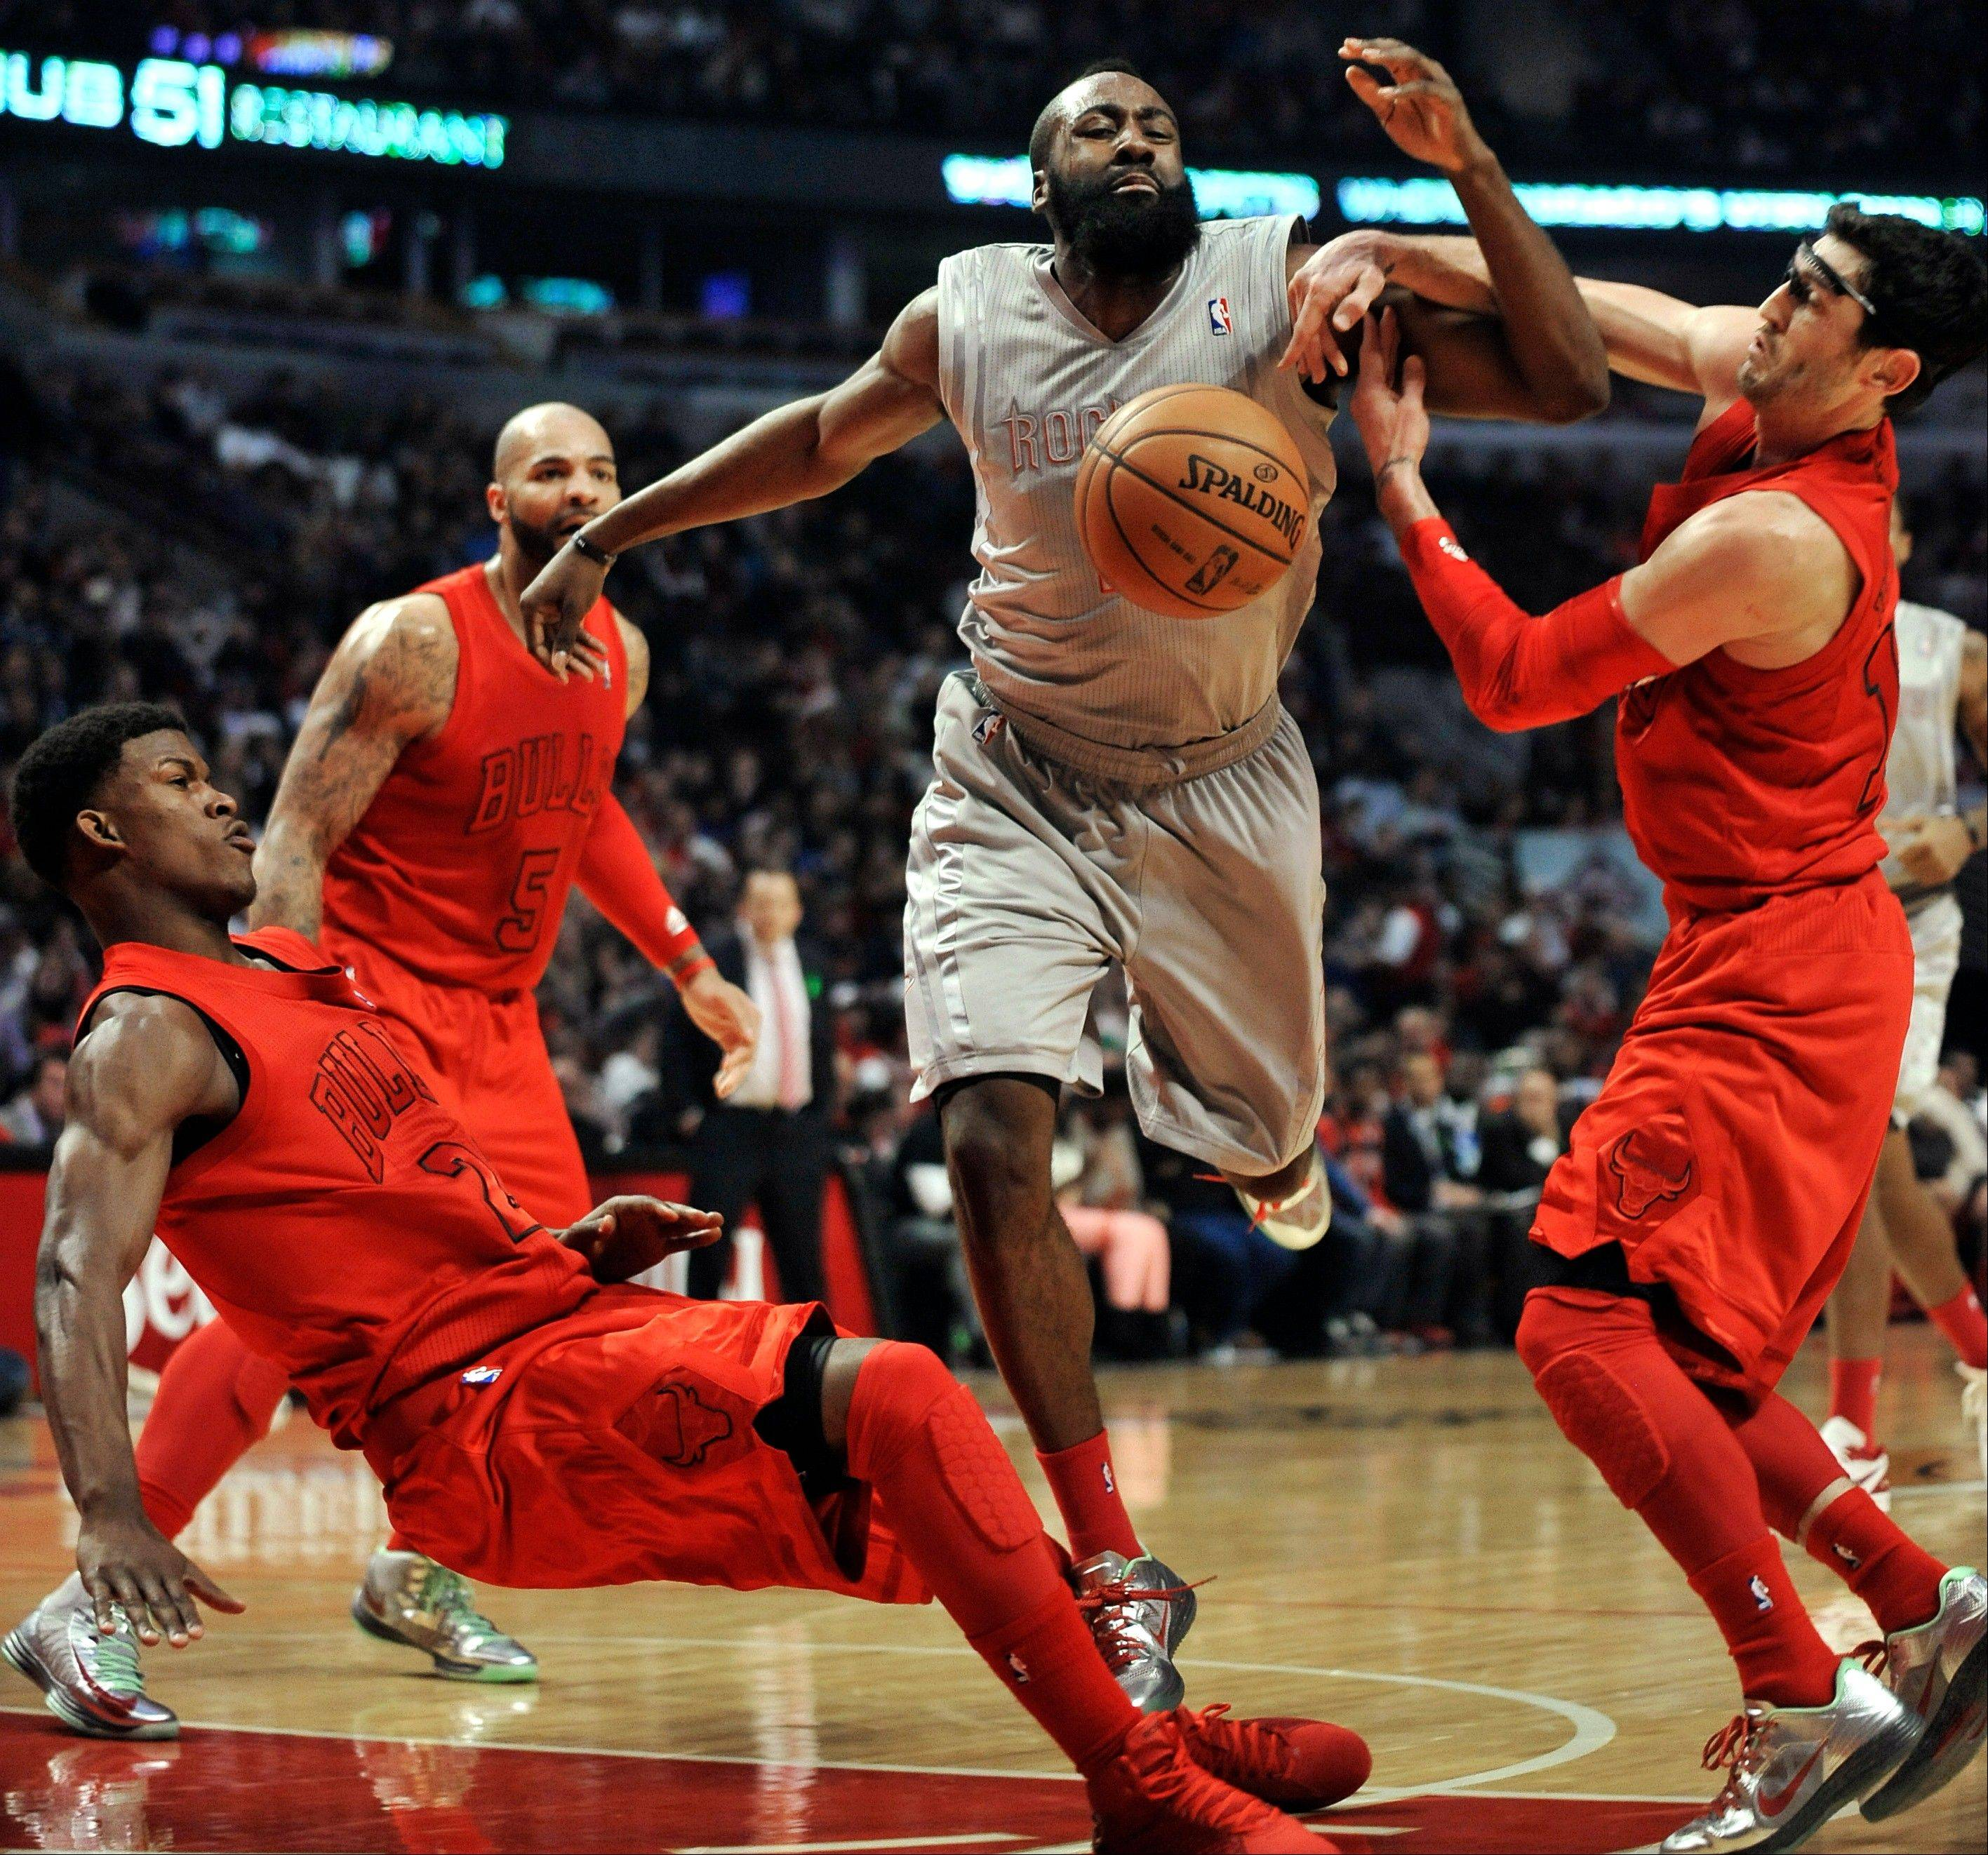 Houston Rockets' James Harden, center, battles Chicago Bulls' Kirk Hinrich, right, and Jimmy Butler, left, for a loose ball during the first quarter of an NBA basketball game in Chicago, Tuesday, Dec. 25, 2012.